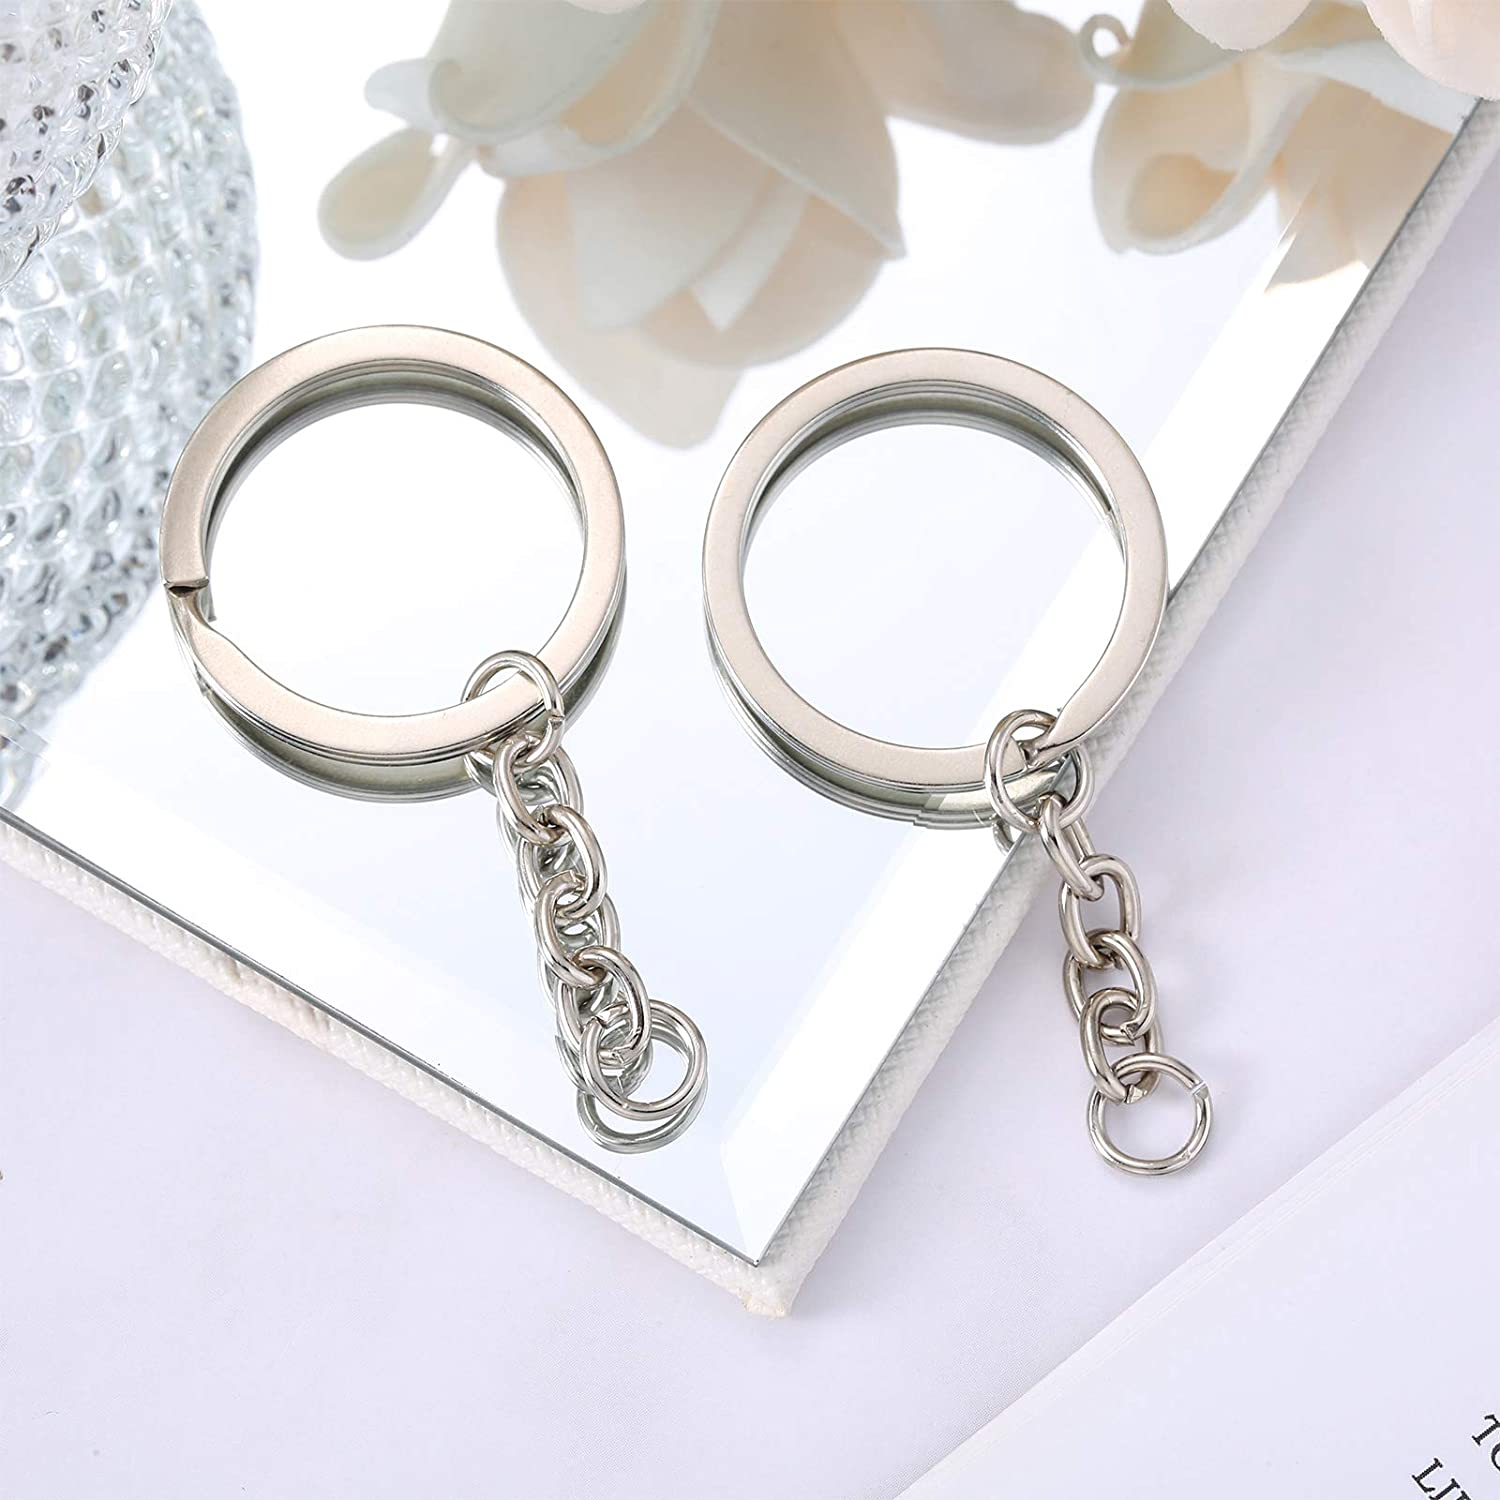 215 Pieces Keychain Rings Set Including 35 Pieces Keychain Rings with Open Jump Rings and 180 Pieces Small Screw Eye Pins for Crafts and Jewelry Making Silver